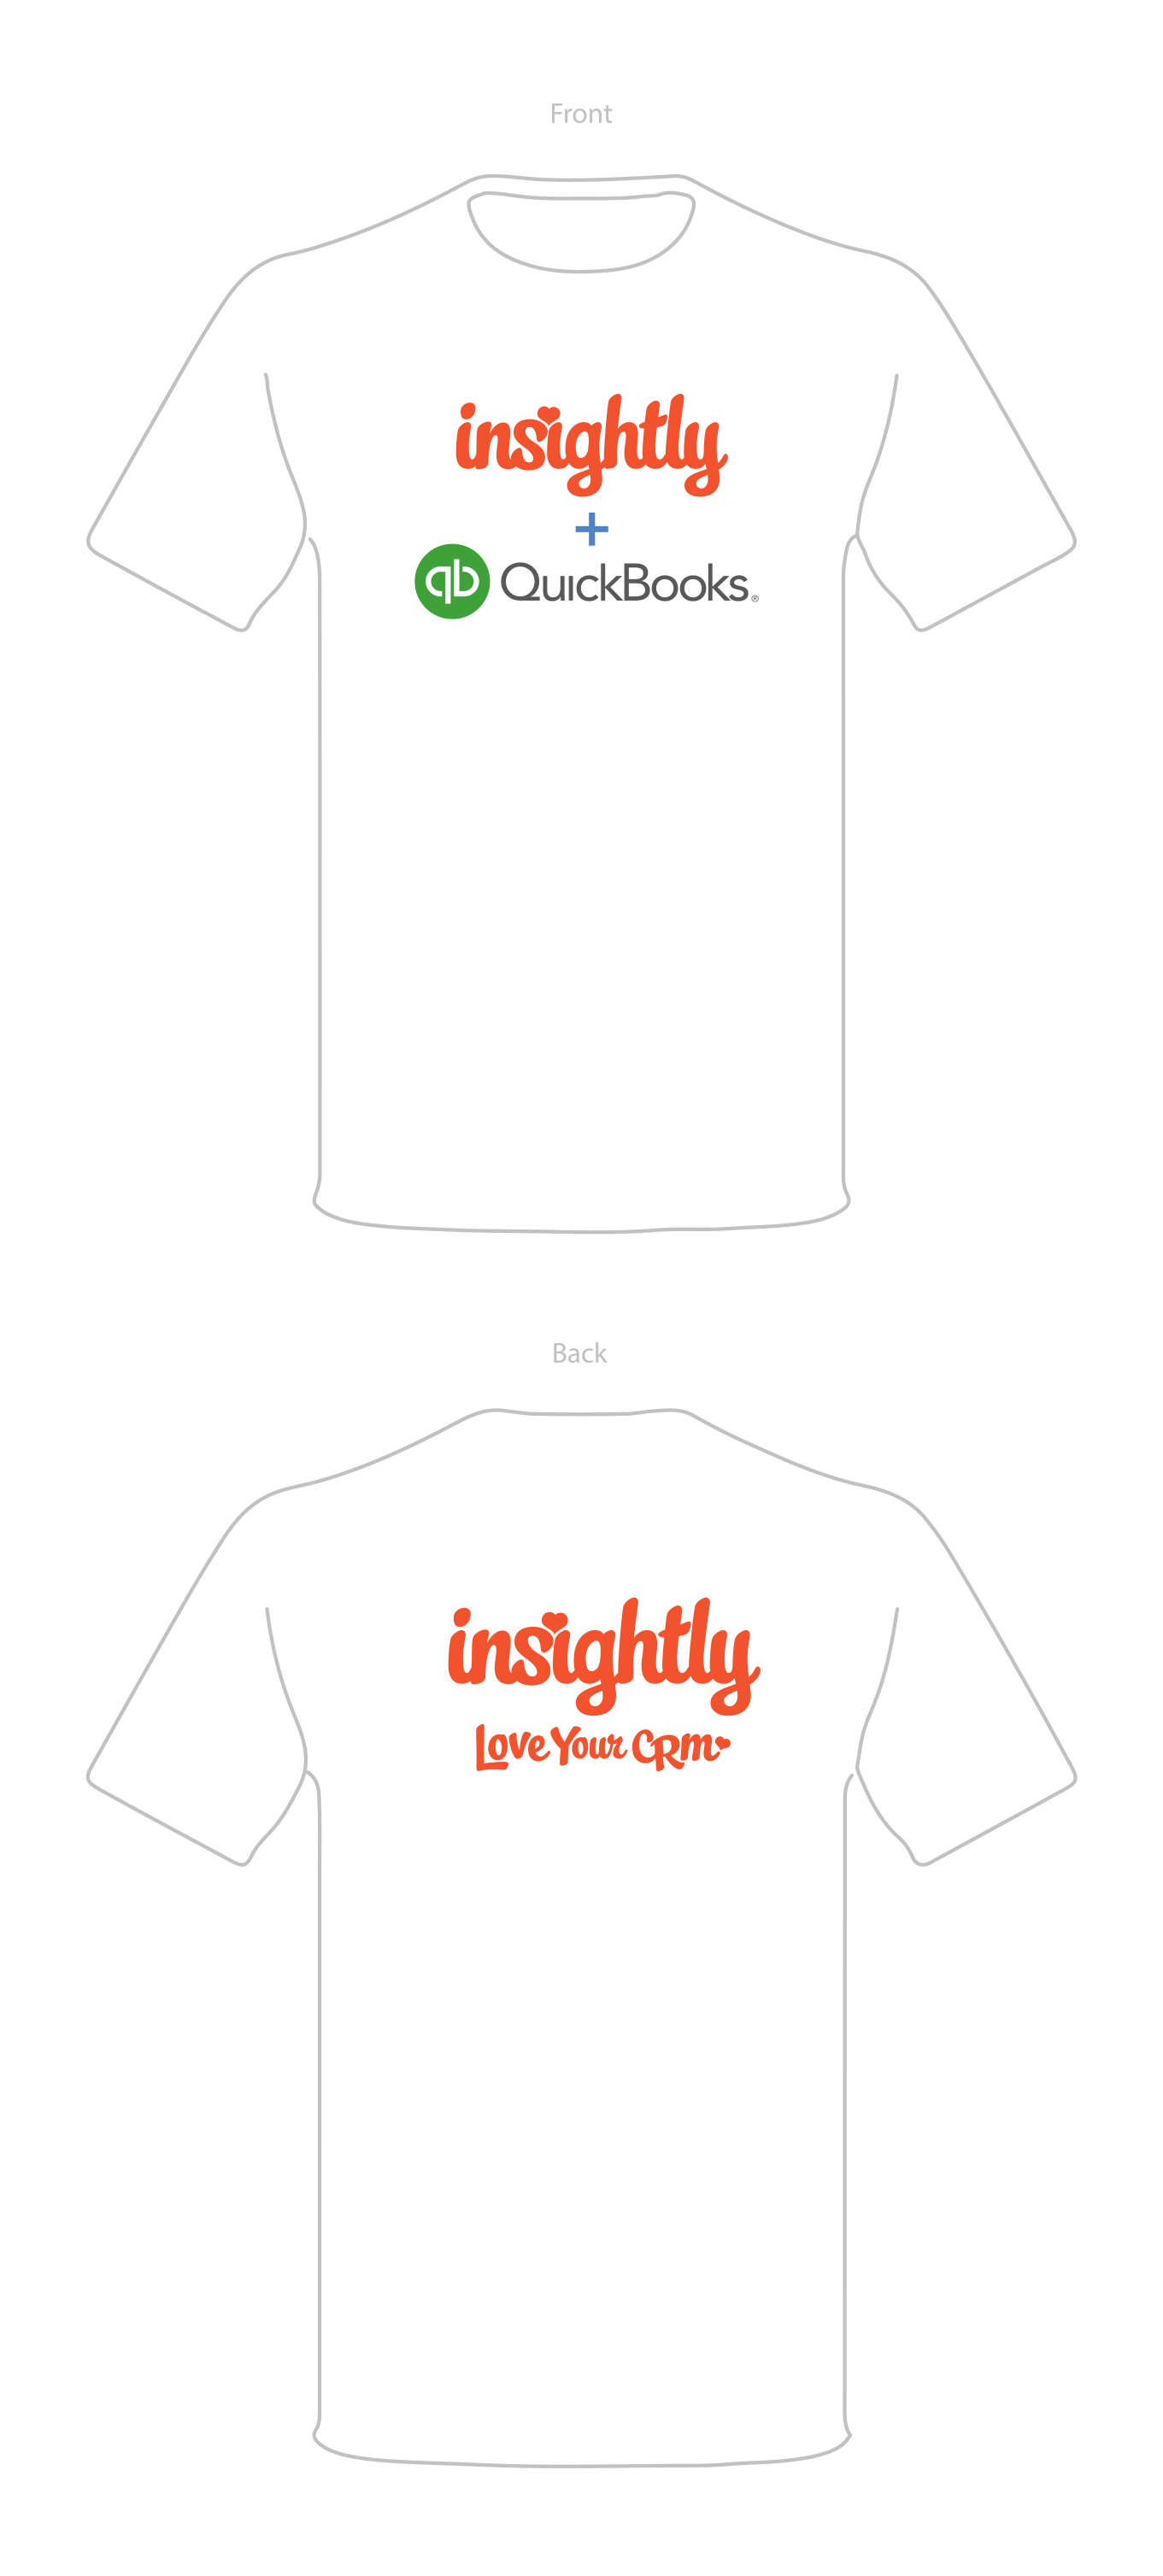 image showing what the graphics would look like on the front and back of a t-shirt